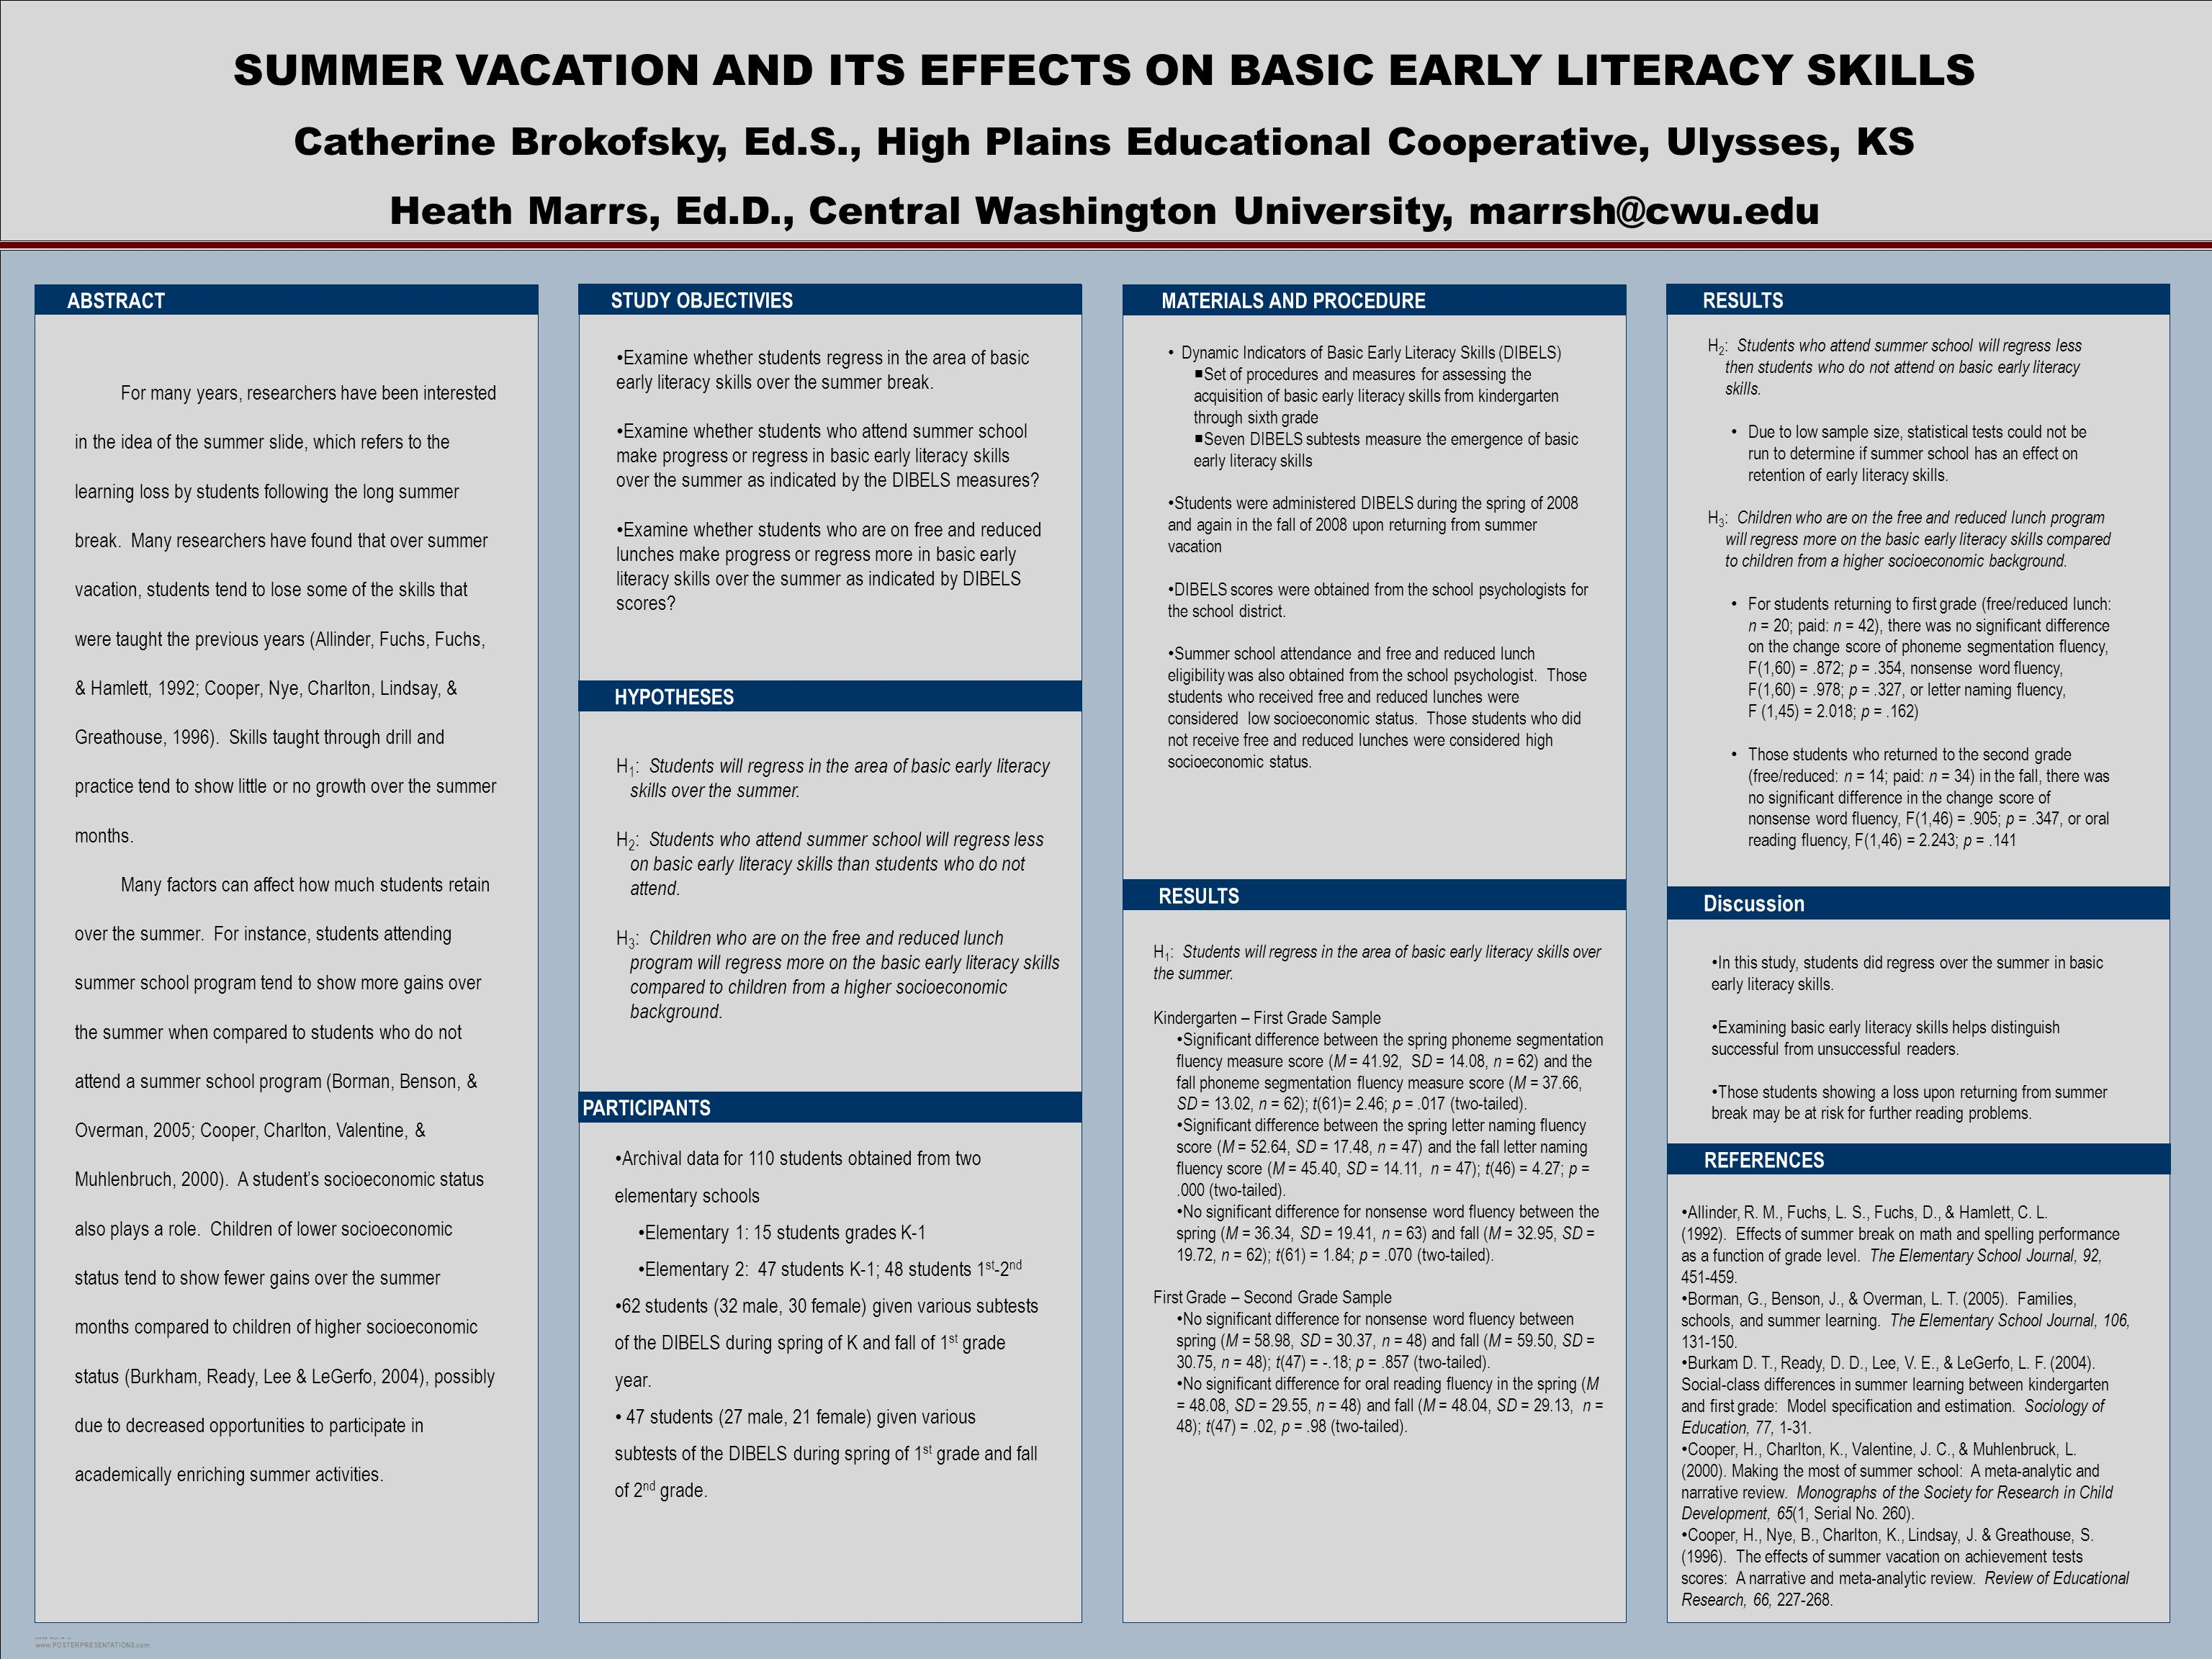 POSTER TEMPLATE BY:   SUMMER VACATION AND ITS EFFECTS ON BASIC EARLY LITERACY SKILLS Catherine Brokofsky, Ed.S., High Plains Educational Cooperative, Ulysses, KS Heath Marrs, Ed.D., Central Washington University, MATERIALS AND PROCEDURE RESULTS Discussion ABSTRACT HYPOTHESES STUDY OBJECTIVIES PARTICIPANTS REFERENCES RESULTS Dynamic Indicators of Basic Early Literacy Skills (DIBELS) Set of procedures and measures for assessing the acquisition of basic early literacy skills from kindergarten through sixth grade Seven DIBELS subtests measure the emergence of basic early literacy skills Students were administered DIBELS during the spring of 2008 and again in the fall of 2008 upon returning from summer vacation DIBELS scores were obtained from the school psychologists for the school district.